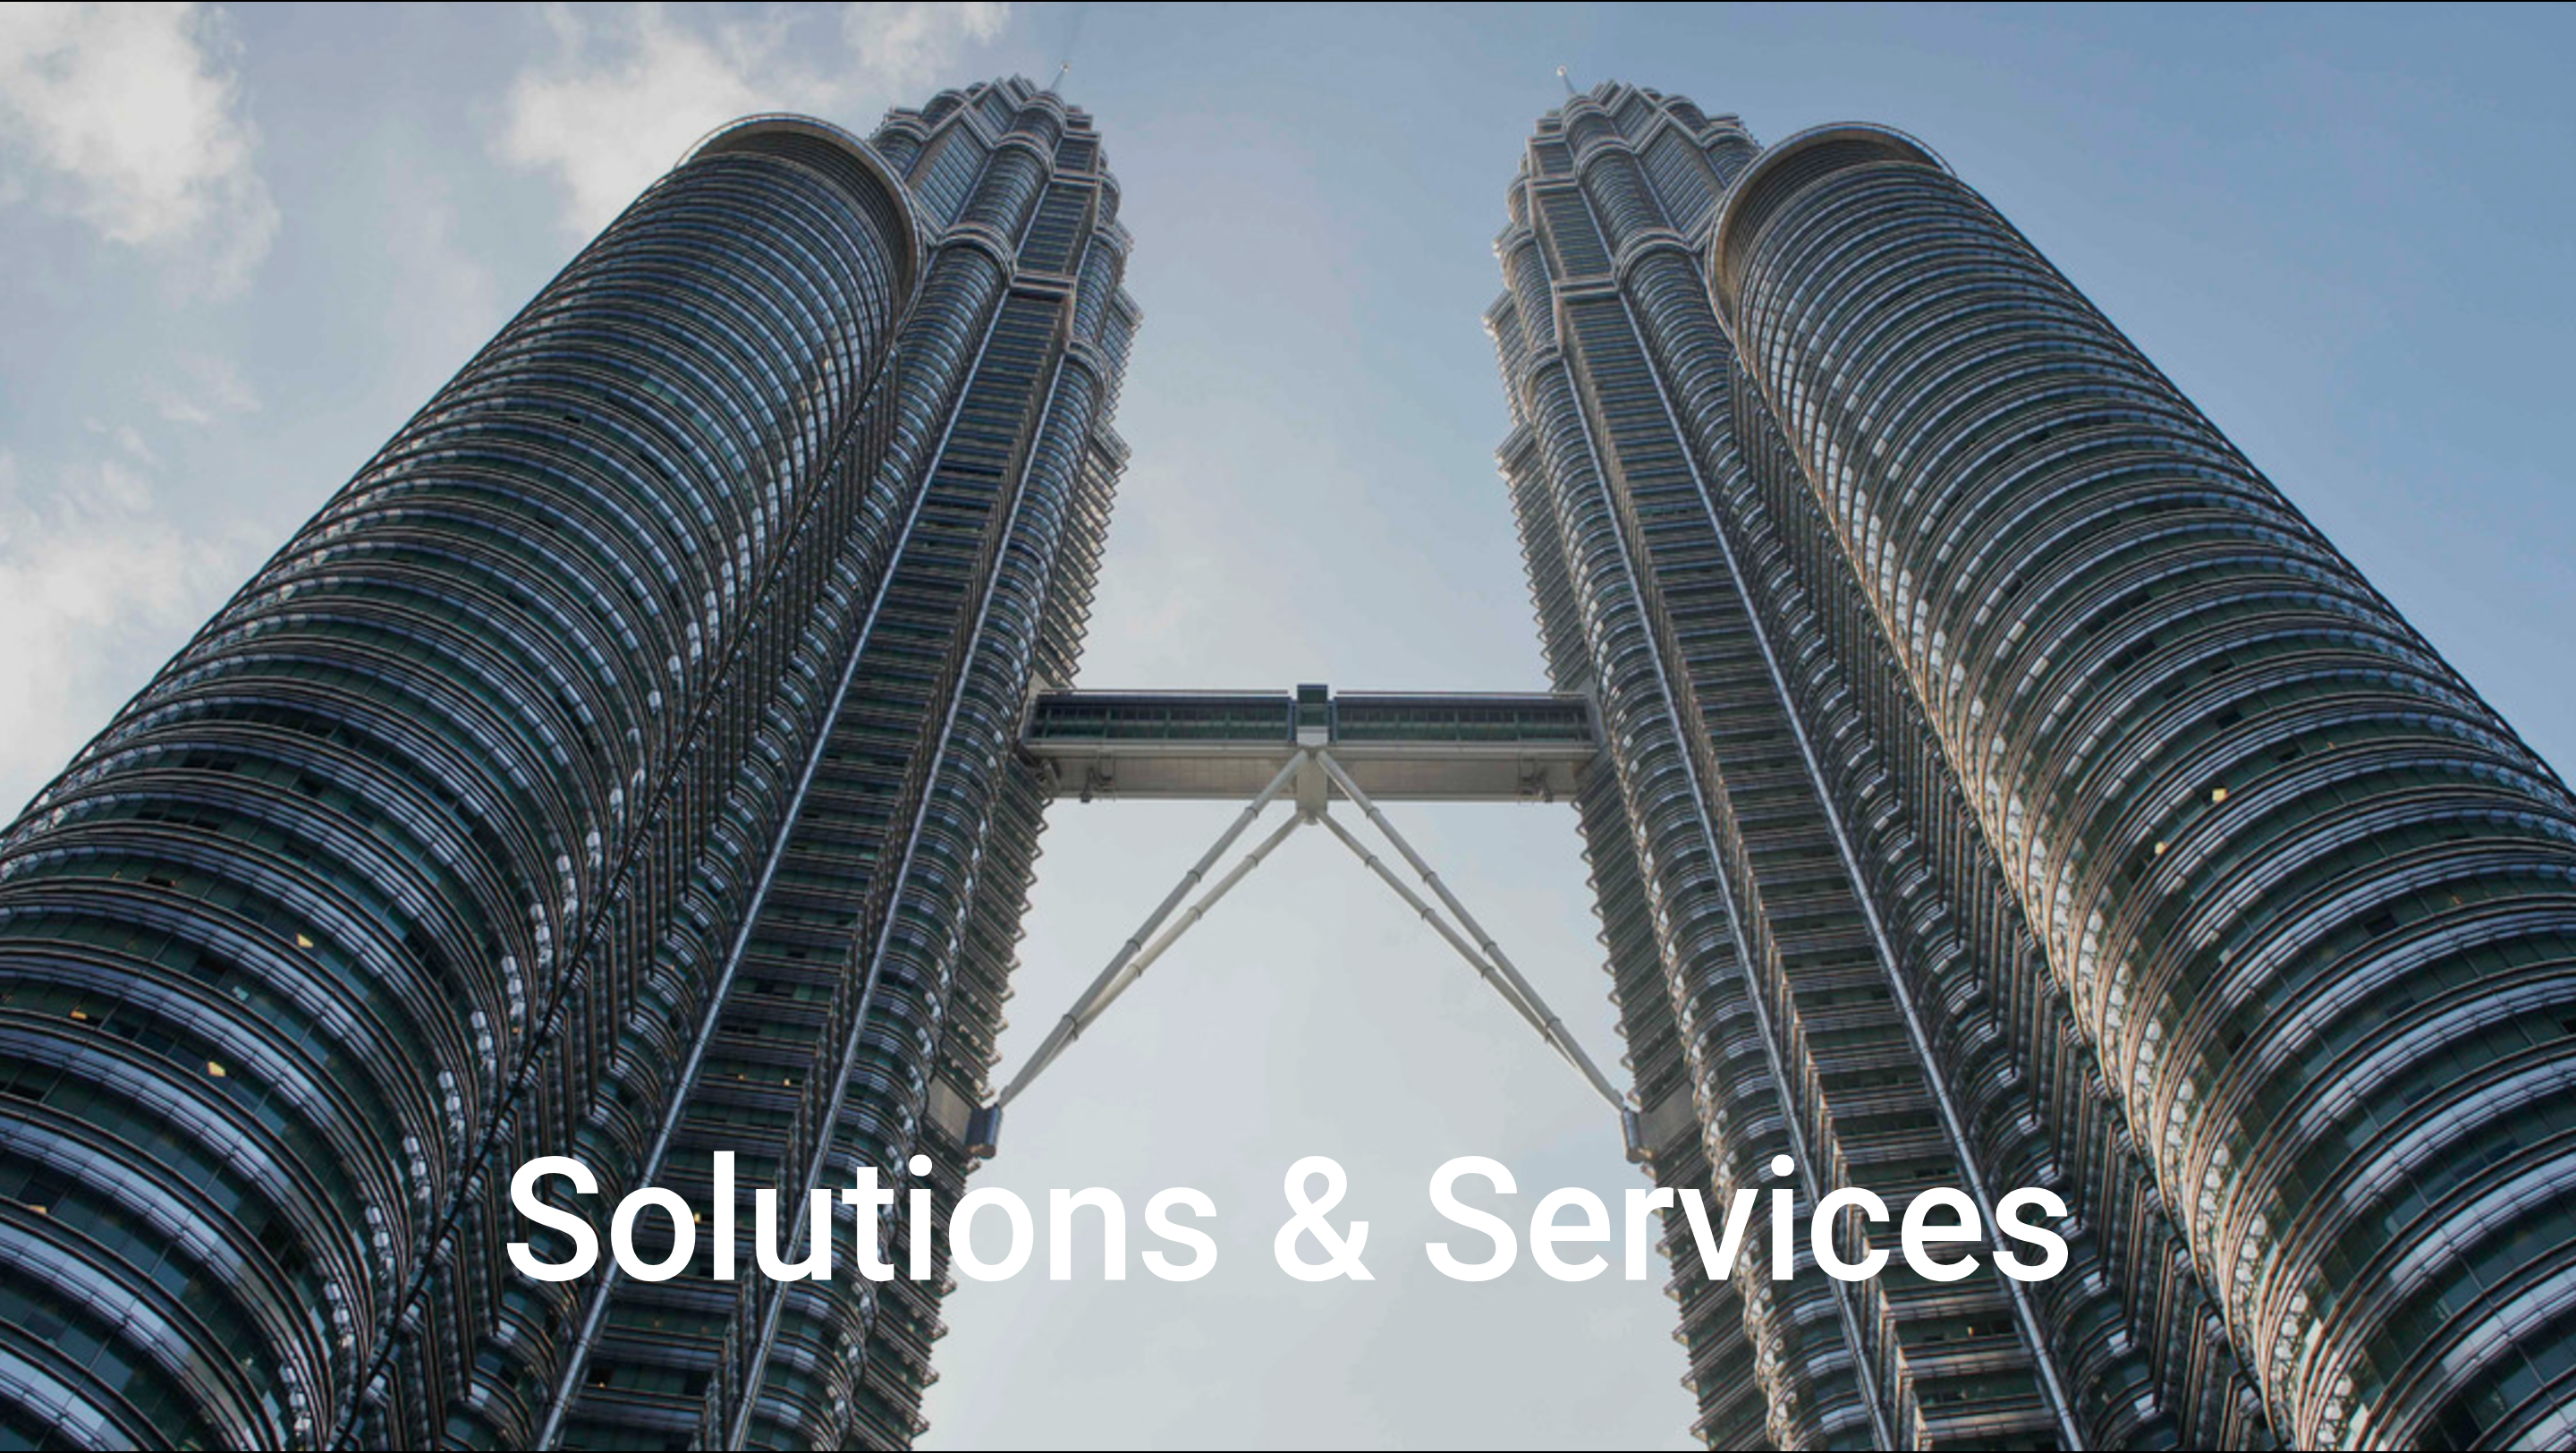 Solutions & Services